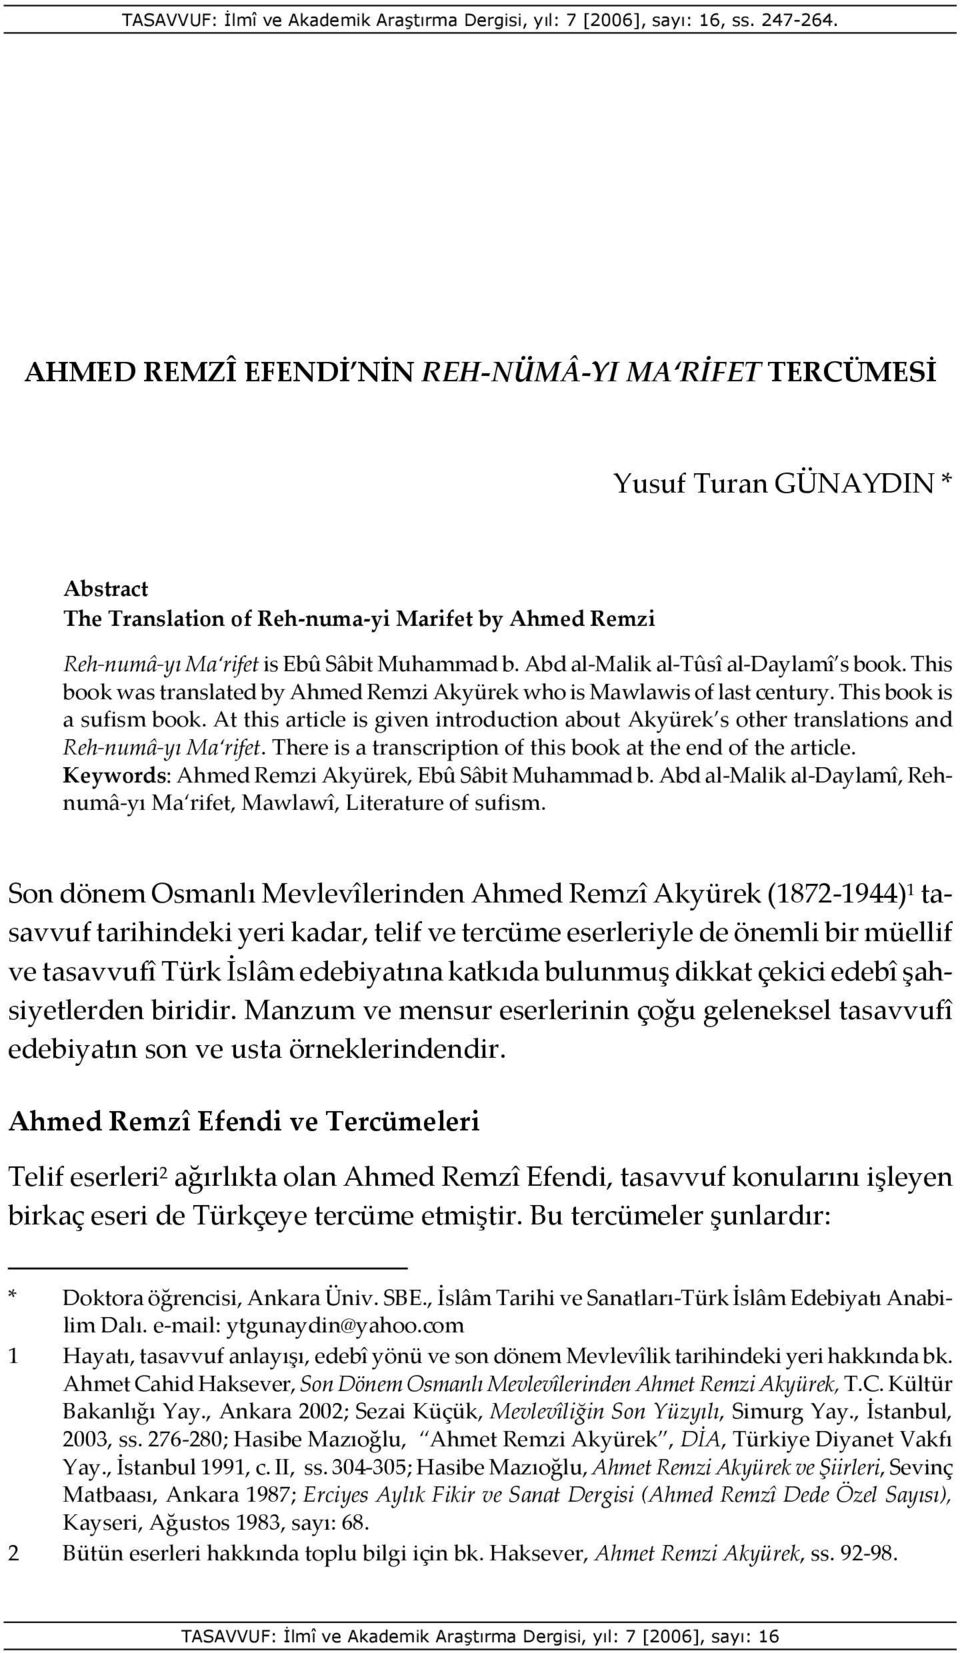 At this article is given introduction about Akyürek s other translations and Reh-numâ-yı Ma rifet. There is a transcription of this book at the end of the article.